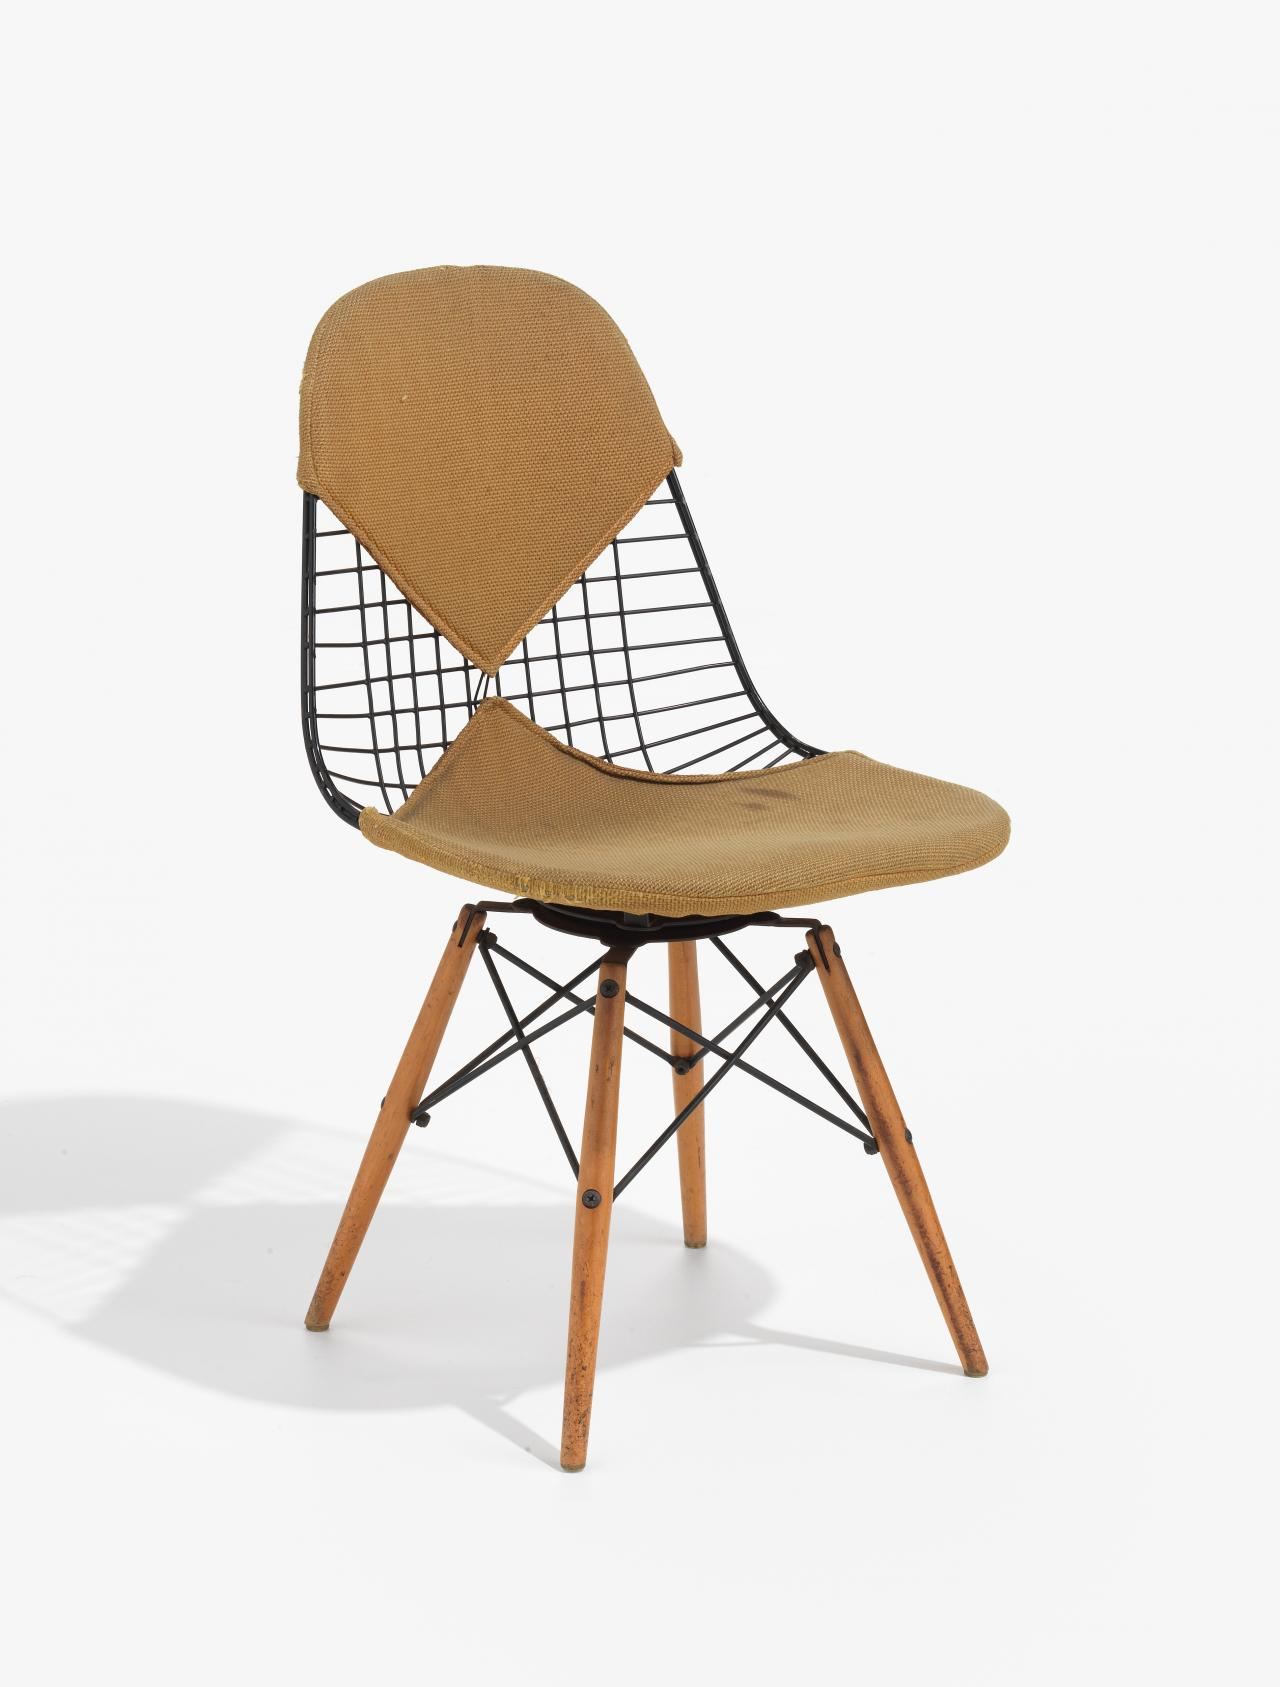 'Wire mesh' chair